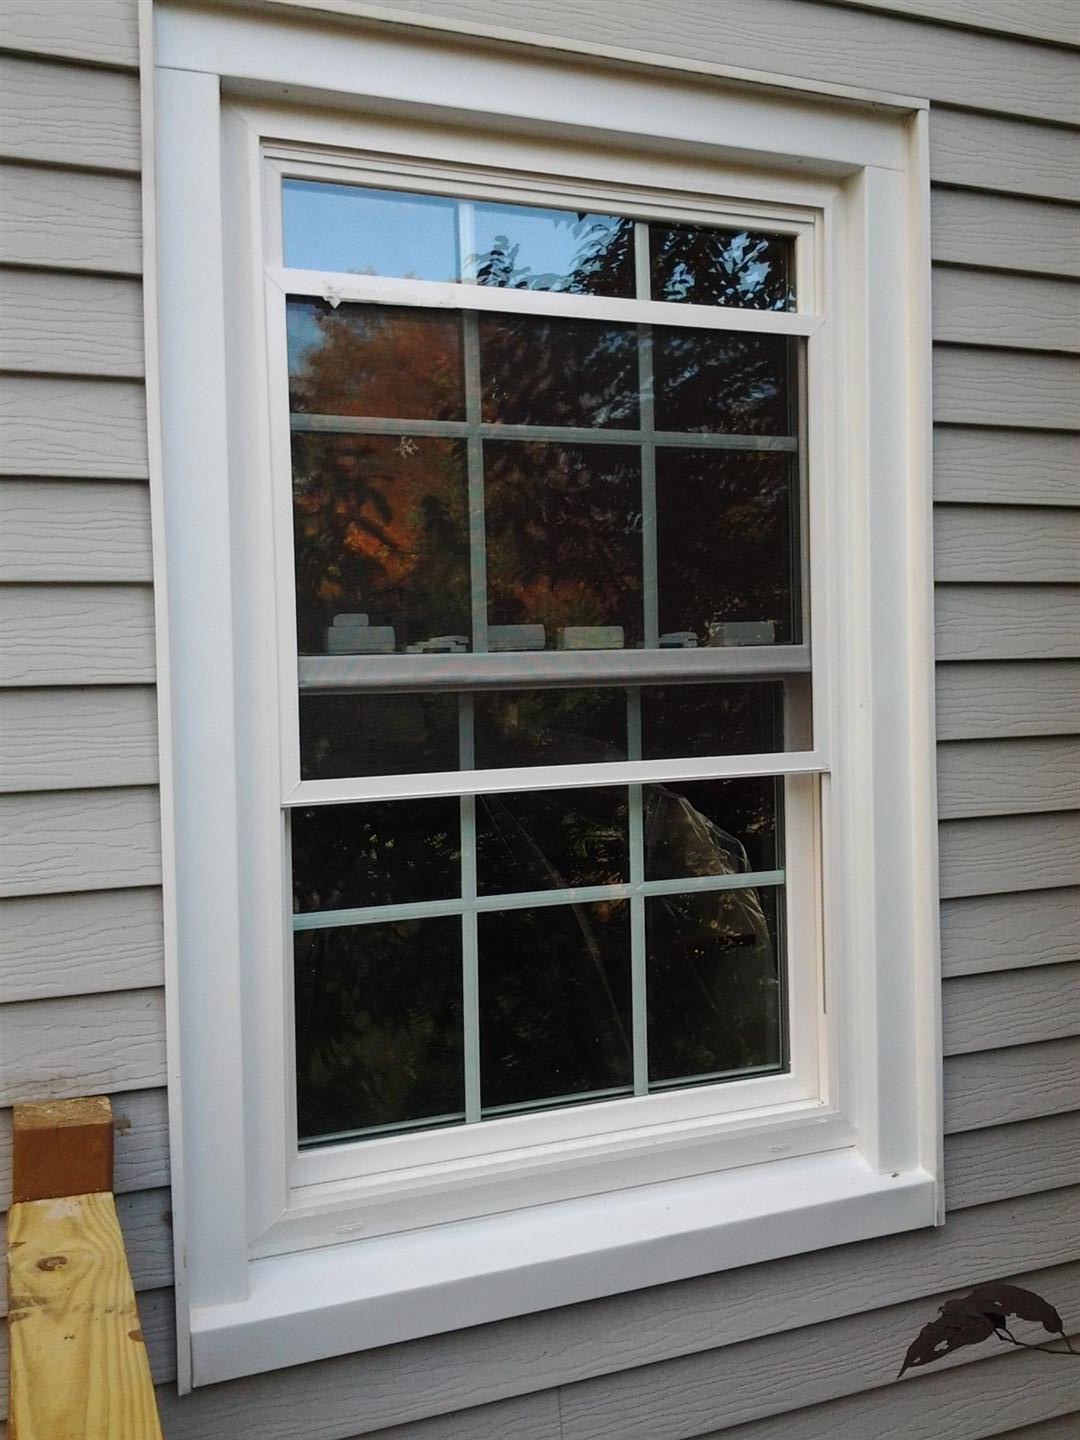 Call m m construction specialist at 908 378 5951 to for New replacement windows